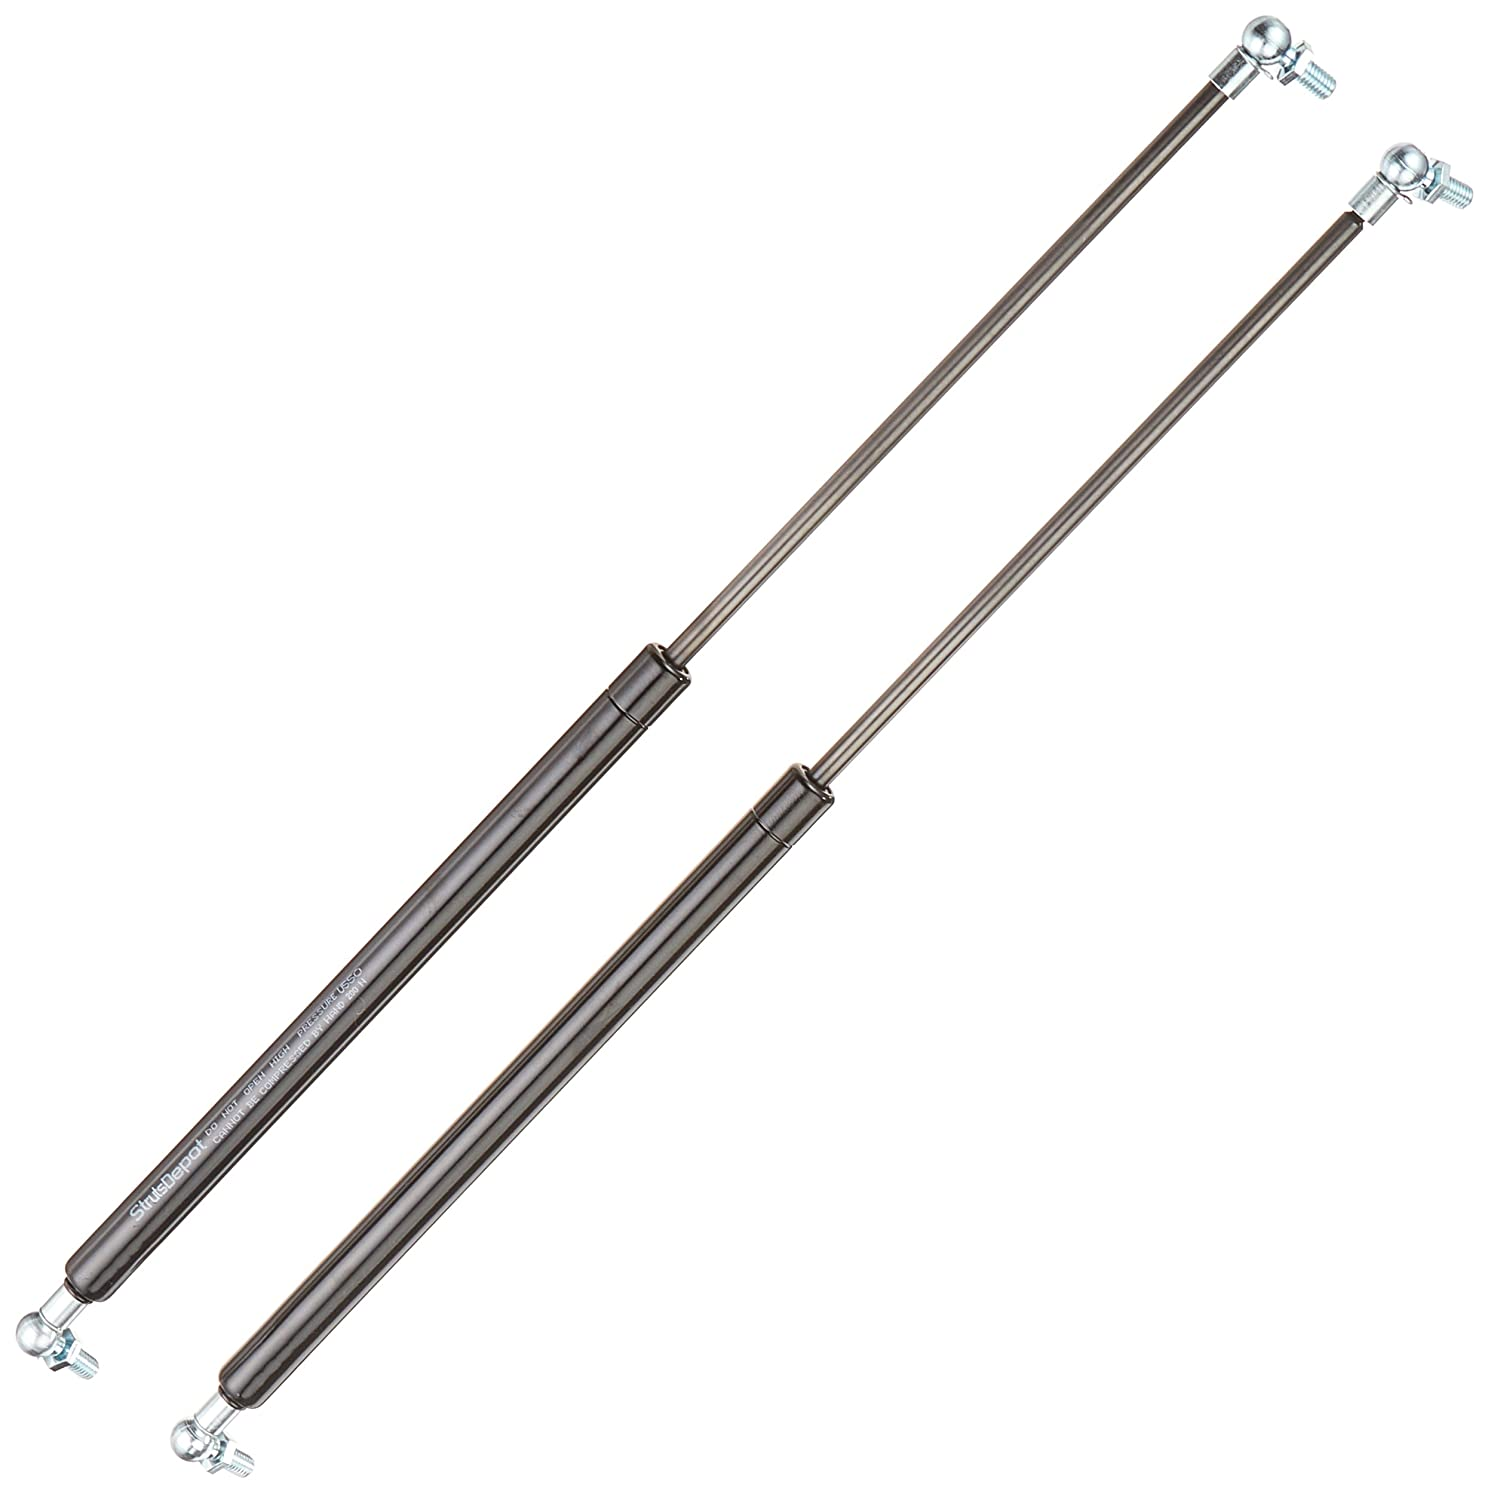 2 x New Replacement Gas Struts Springs w/ Free M8 Ball Stud Bolts 200N 200mm to 600mm (550mm) StrutsDepot U550